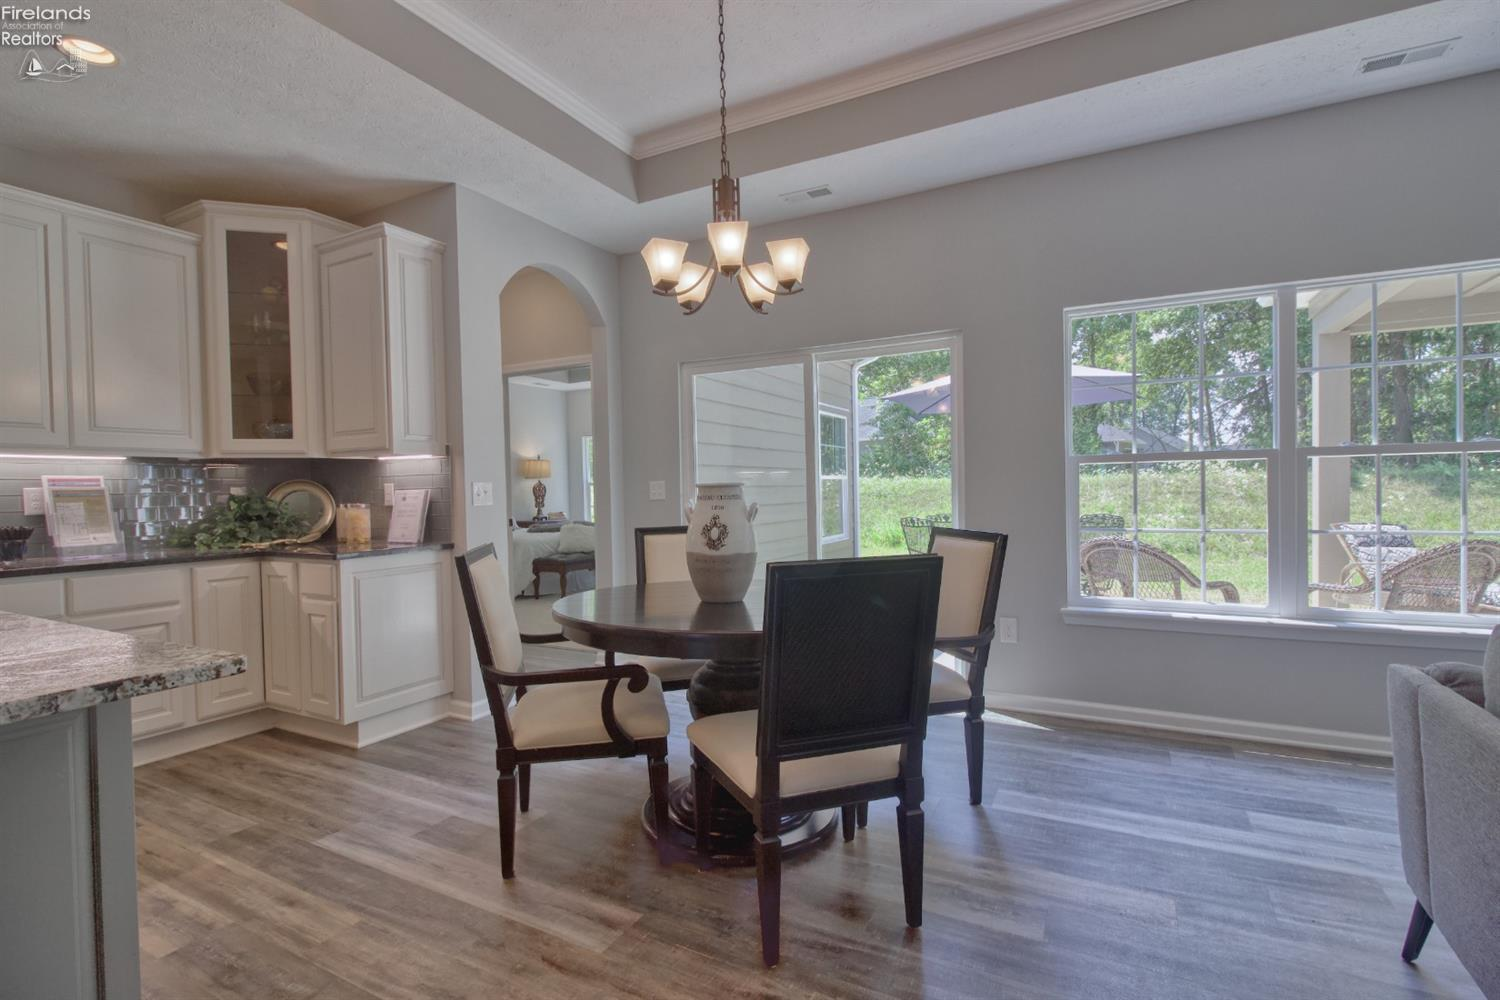 Kitchen featured in The Kimberly By Marblewood Homes in Sandusky, OH